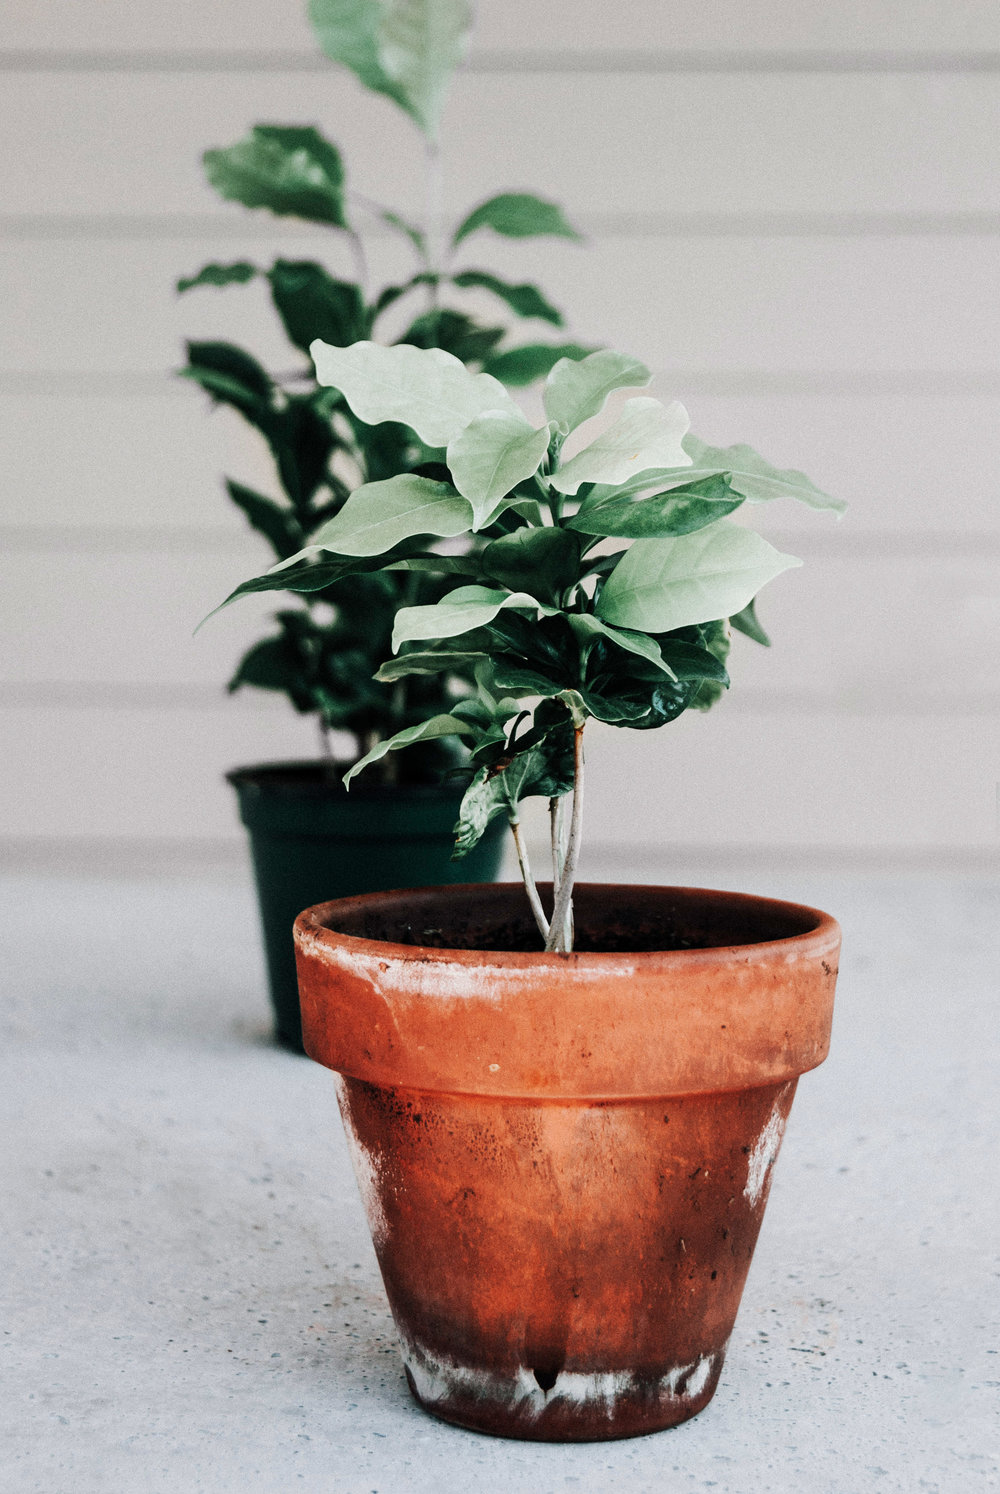 Coffee tree houseplant care guide - Take the quiz & find out what houseplant is best for you!.jpg